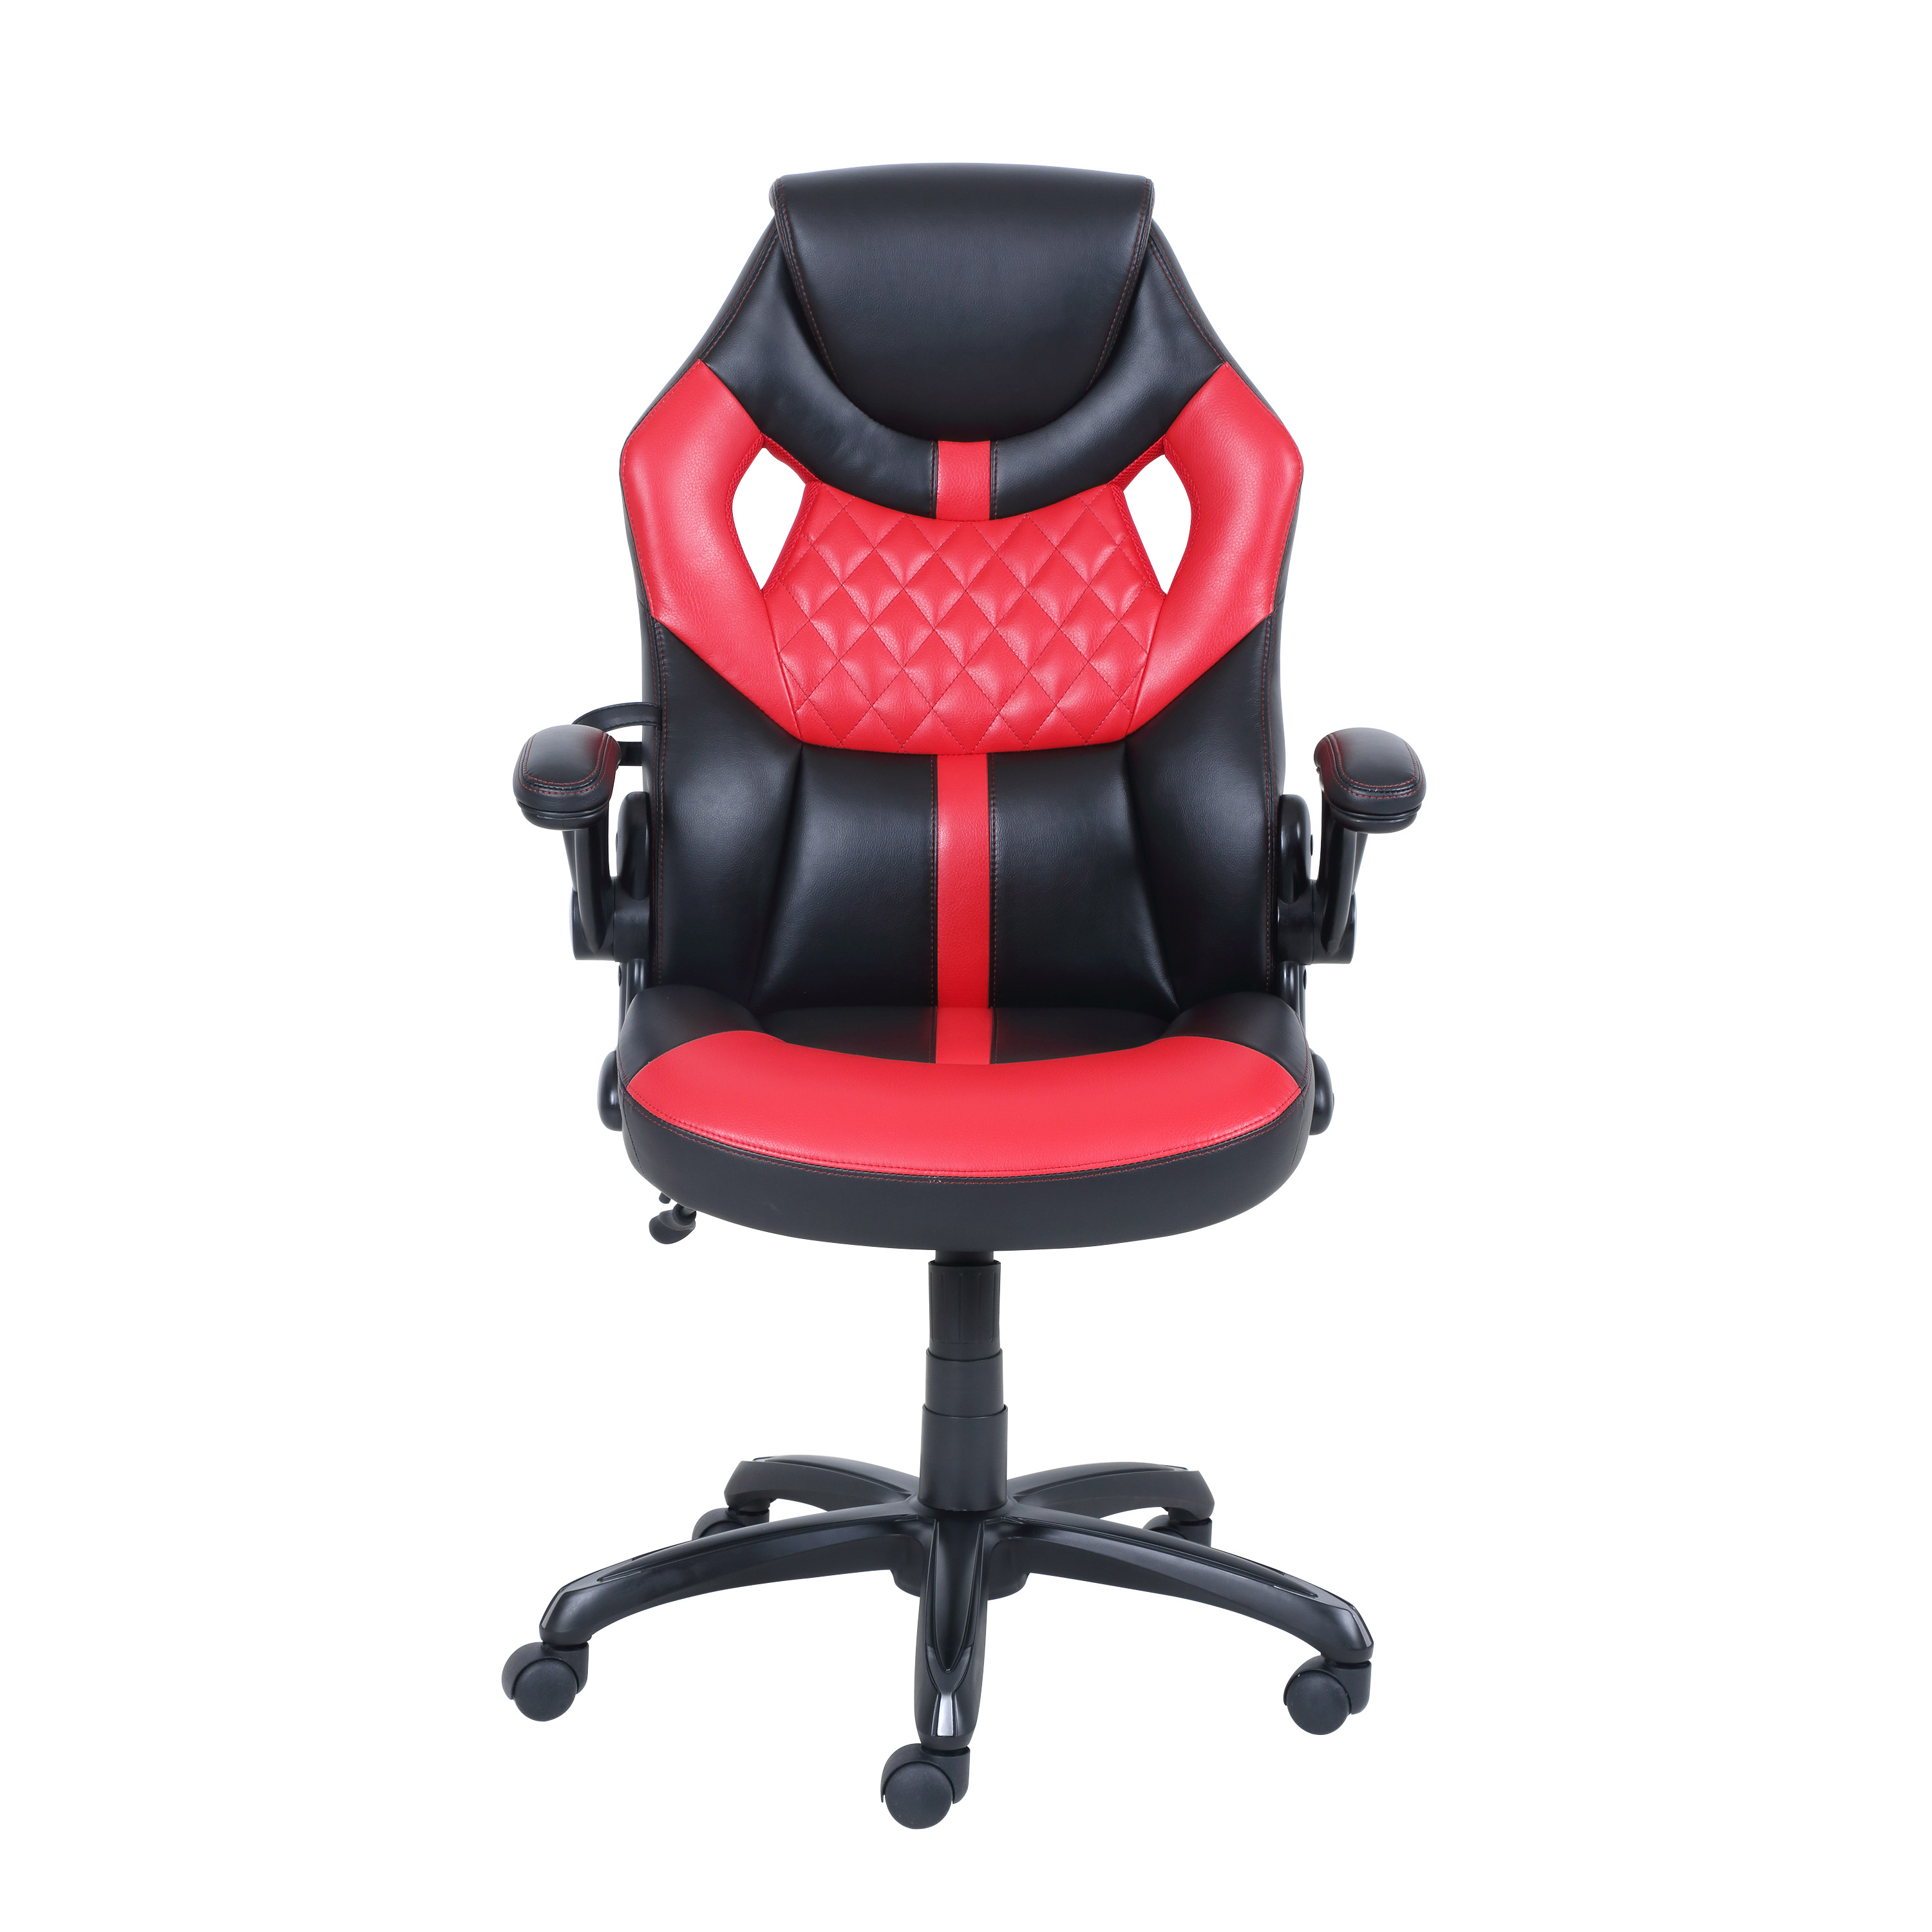 office chair red egg swing rural king gaming style with racing design rich contrasting colors true innovations walmart com